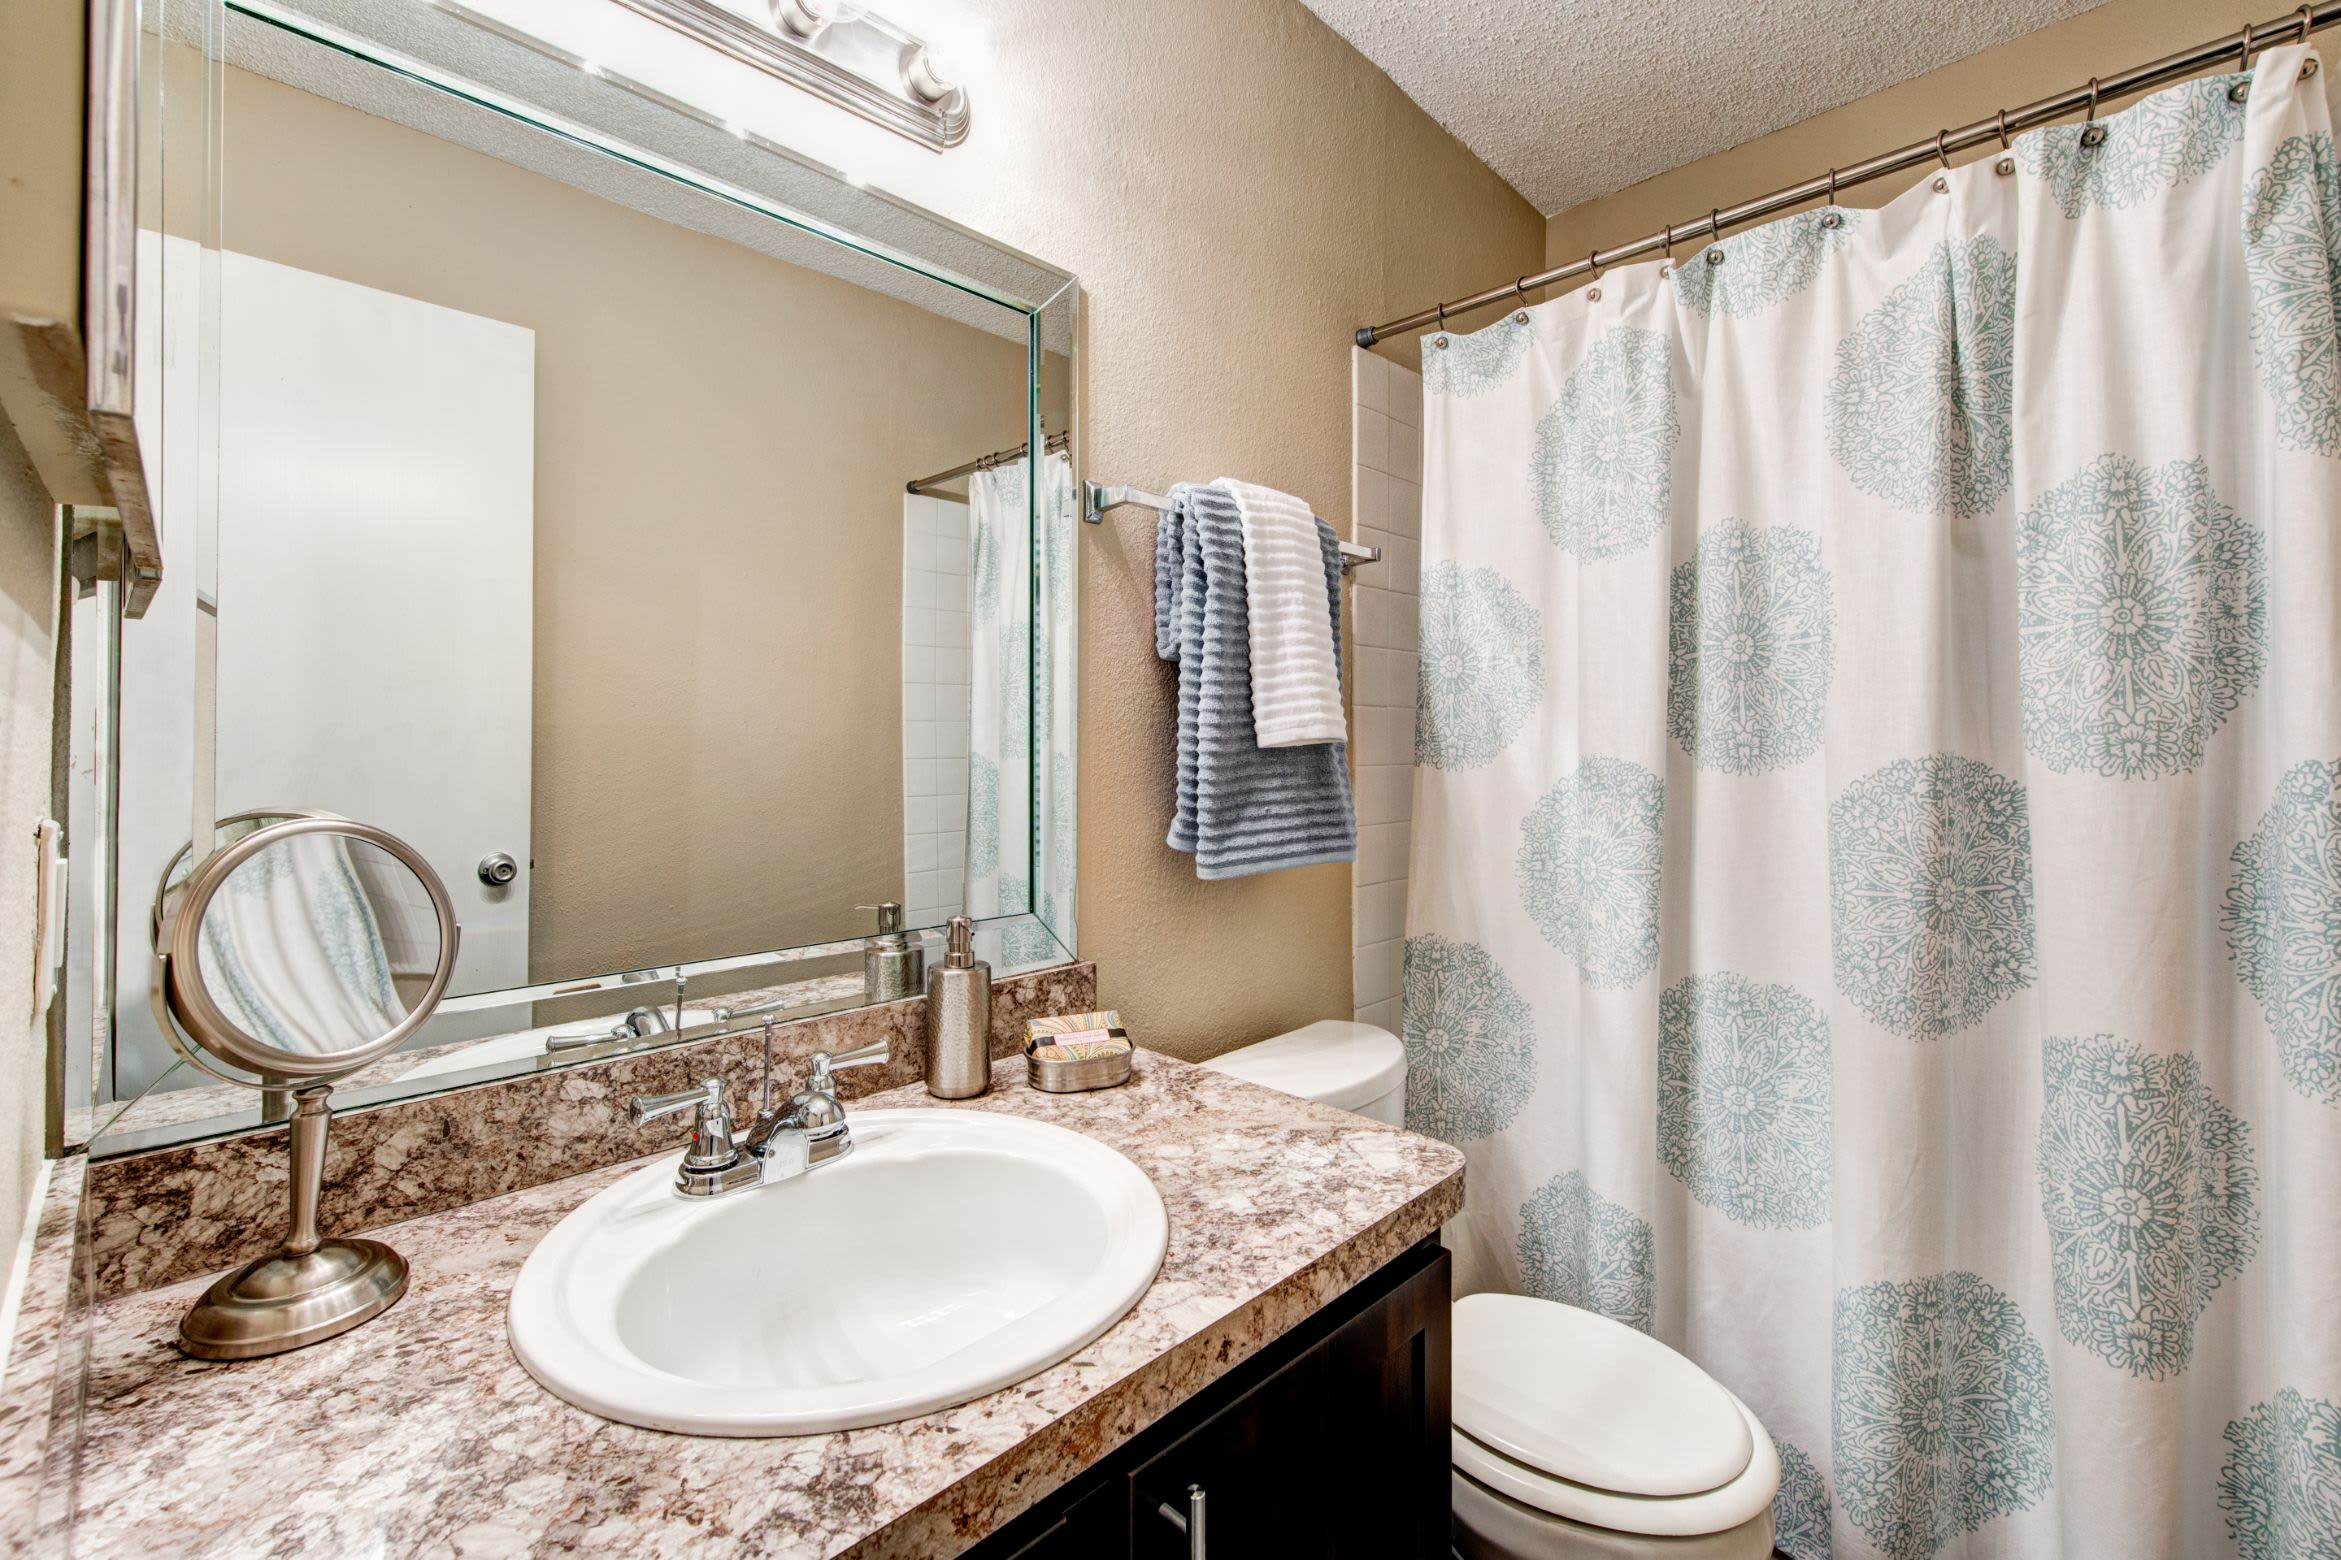 Bathroom with granite style counters at The Park at Flower Mound in Flower Mound, Texas